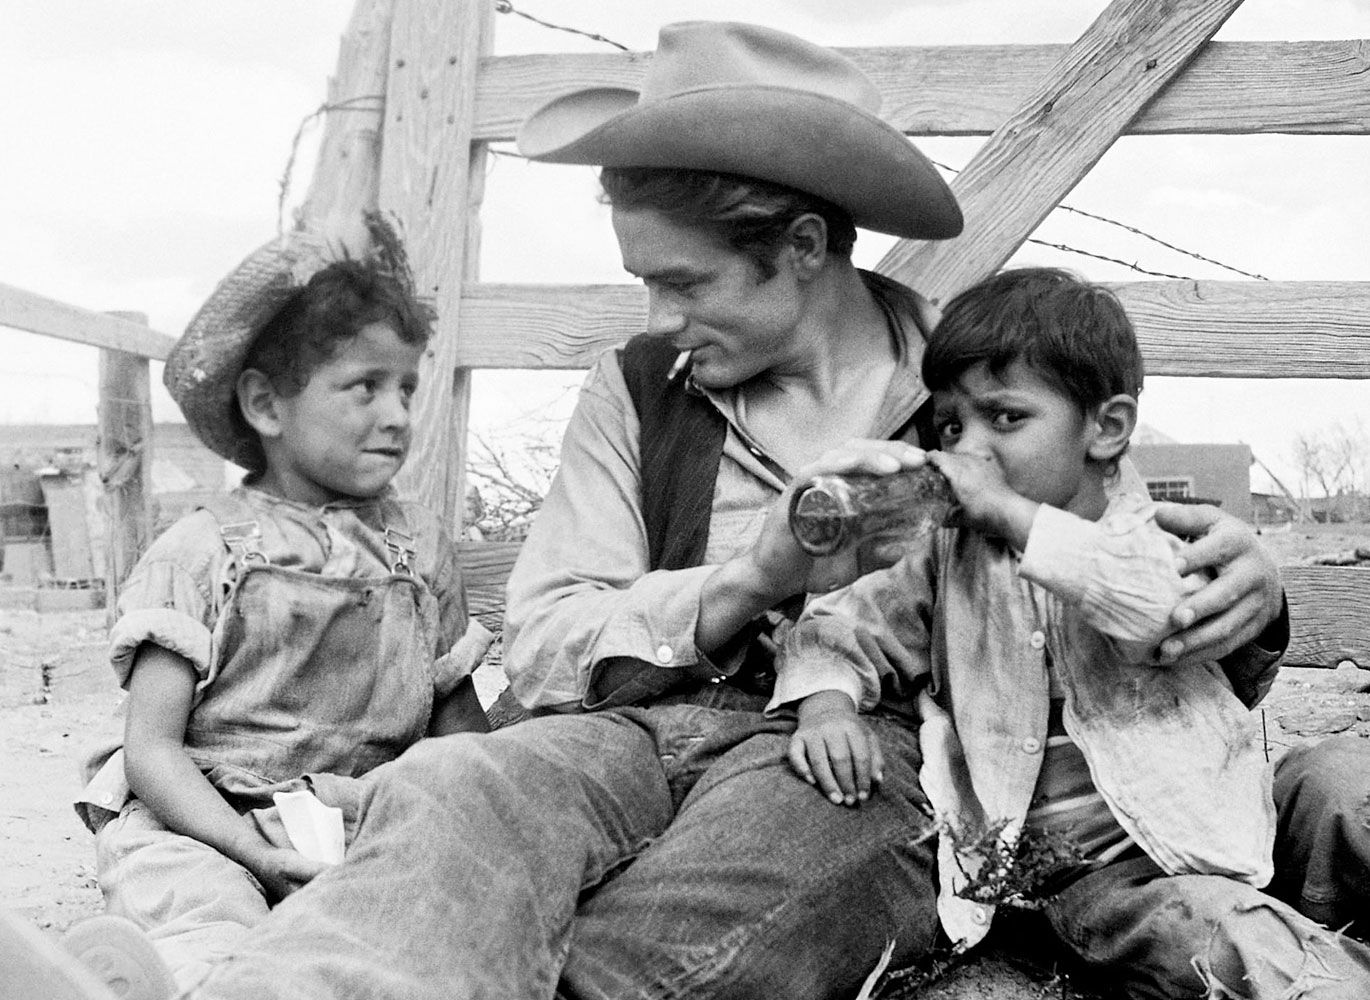 James Dean with two local boys.